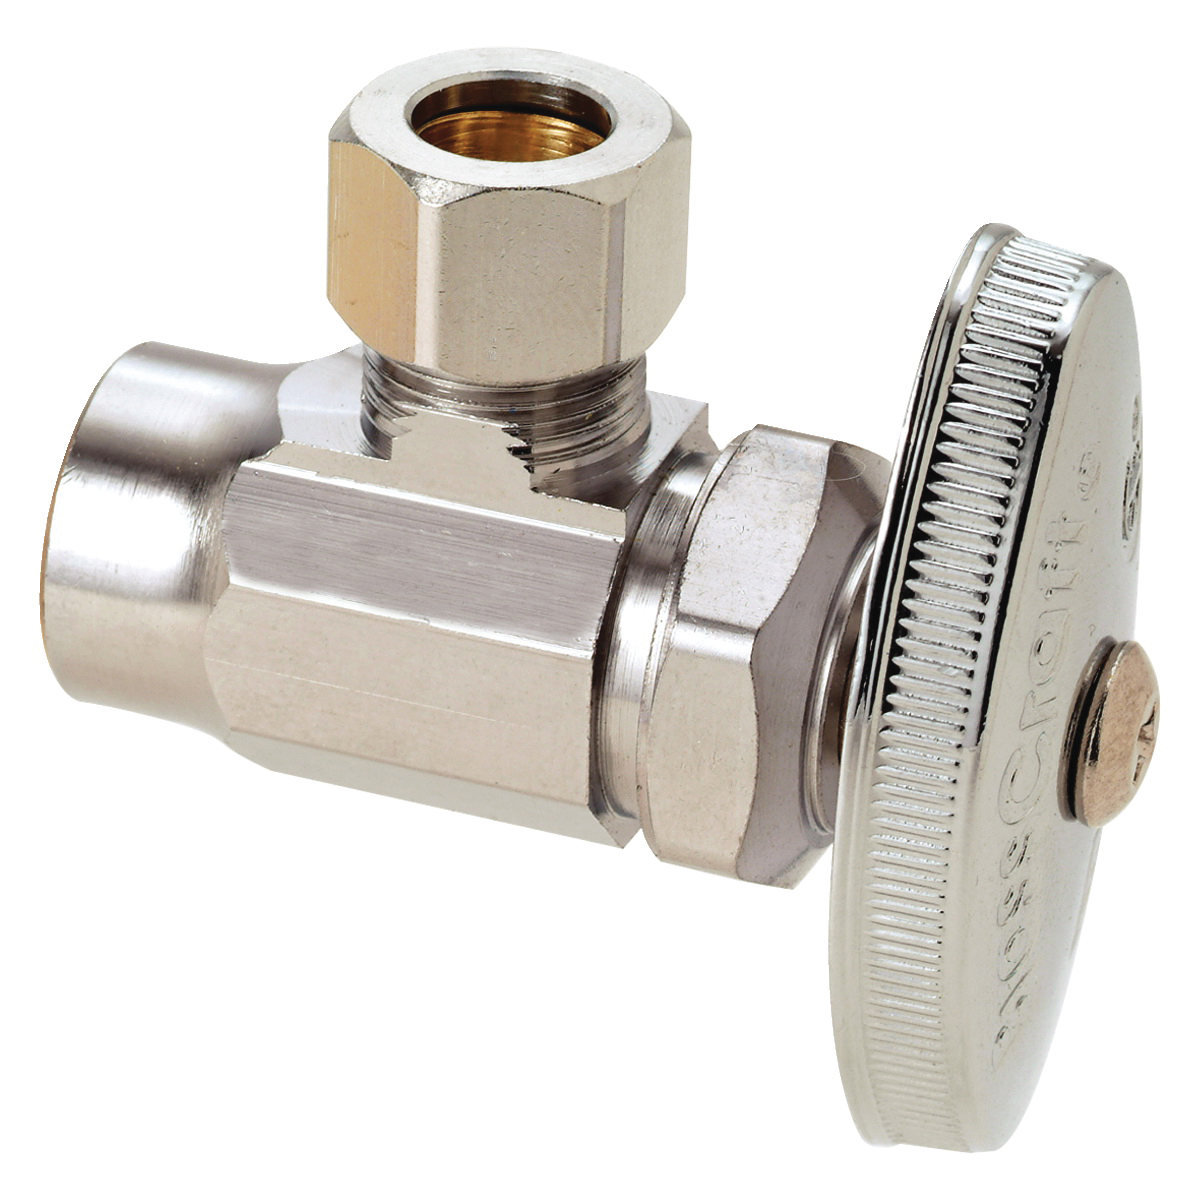 BrassCraft® R19XC Brass Angle Supply Stop Valve, 1/2 in x 3/8 in, Sweat x Compression, 125 psi, 40 - 140 deg F